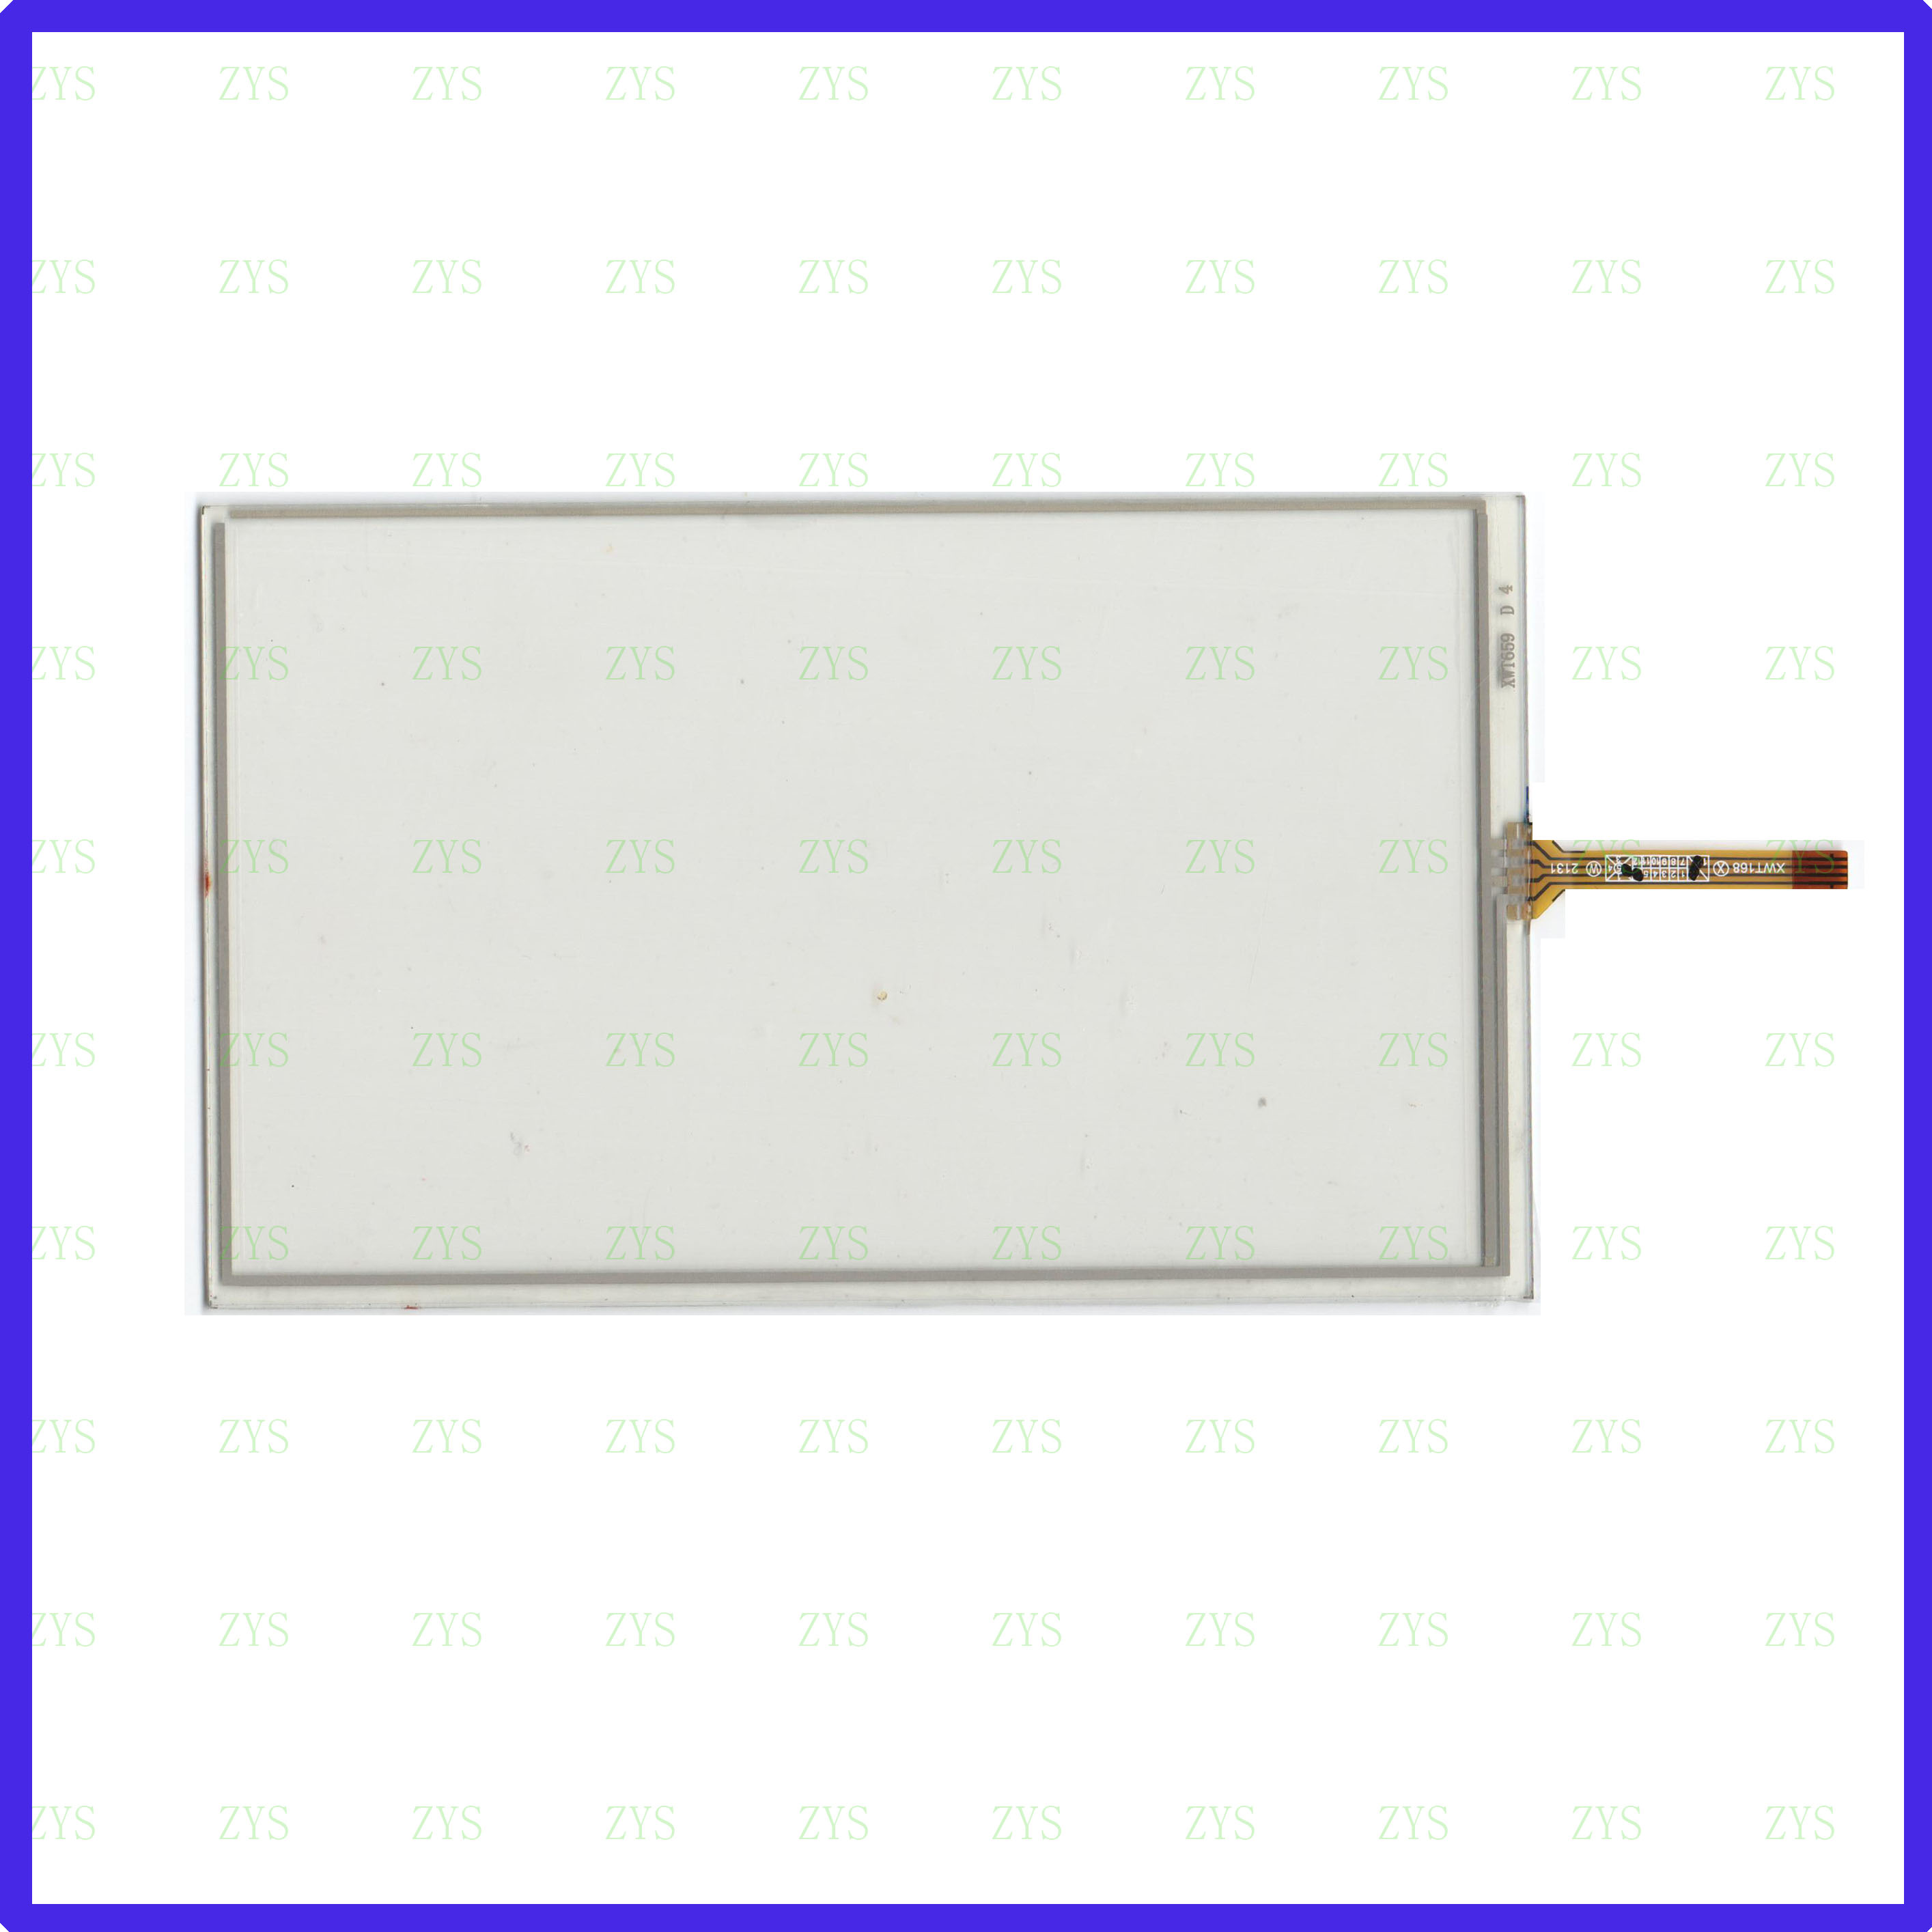 ZhiYuSun For Winca S100 WINCE6 Compatible 7inch Touch Screen Glass 4 Lines  Resistive   TOUCH SCREEN